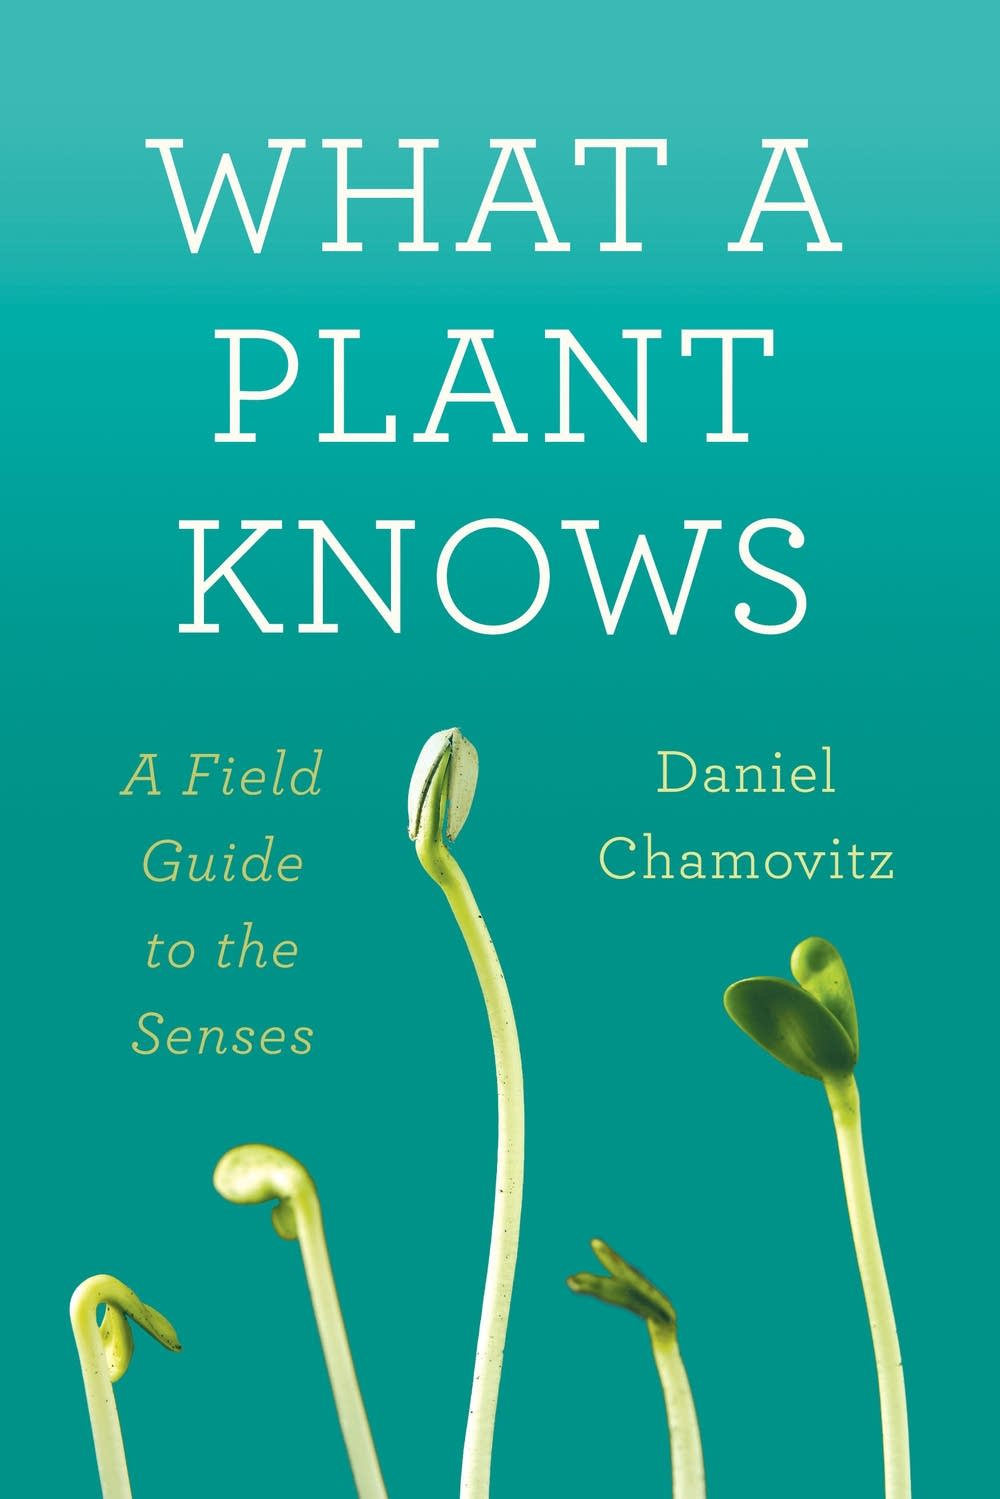 'What a Plant Knows' by Daniel Chamovitz